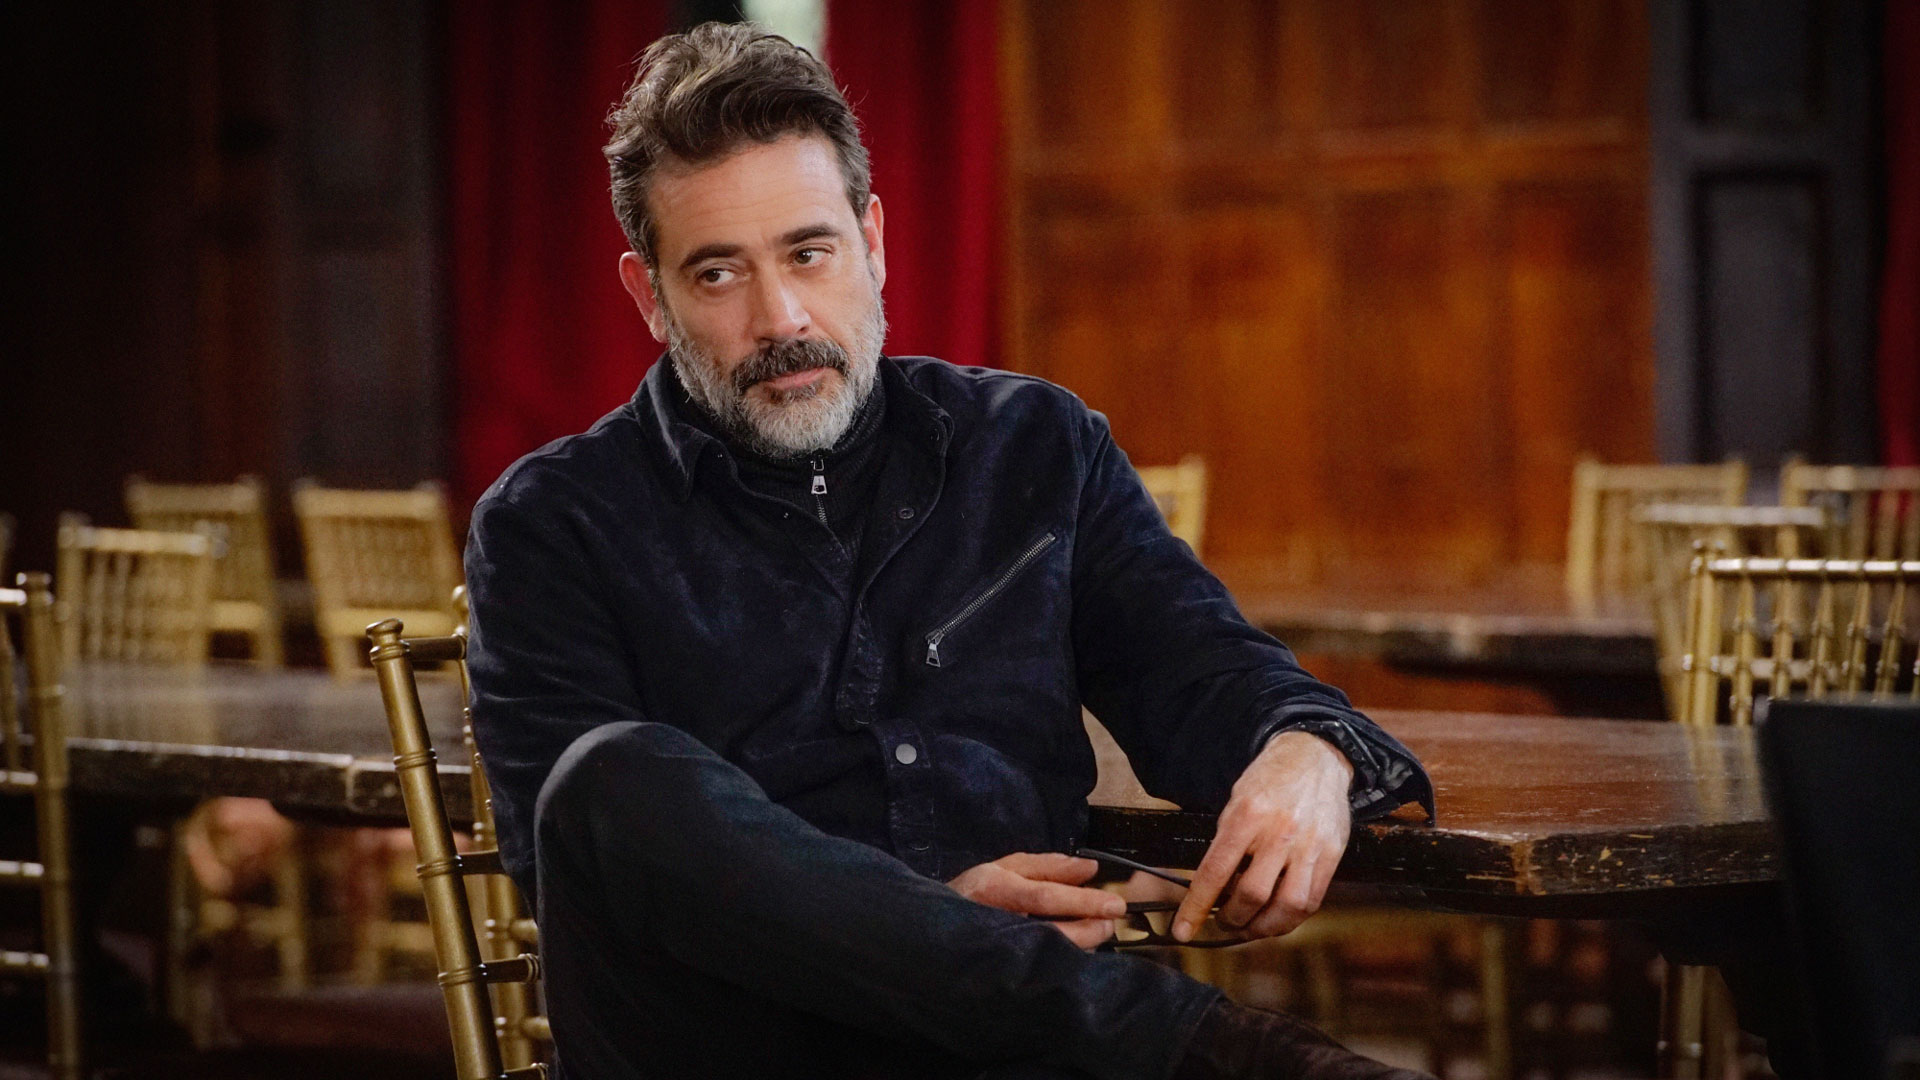 Jeffrey Dean Morgan as Jason Crouse